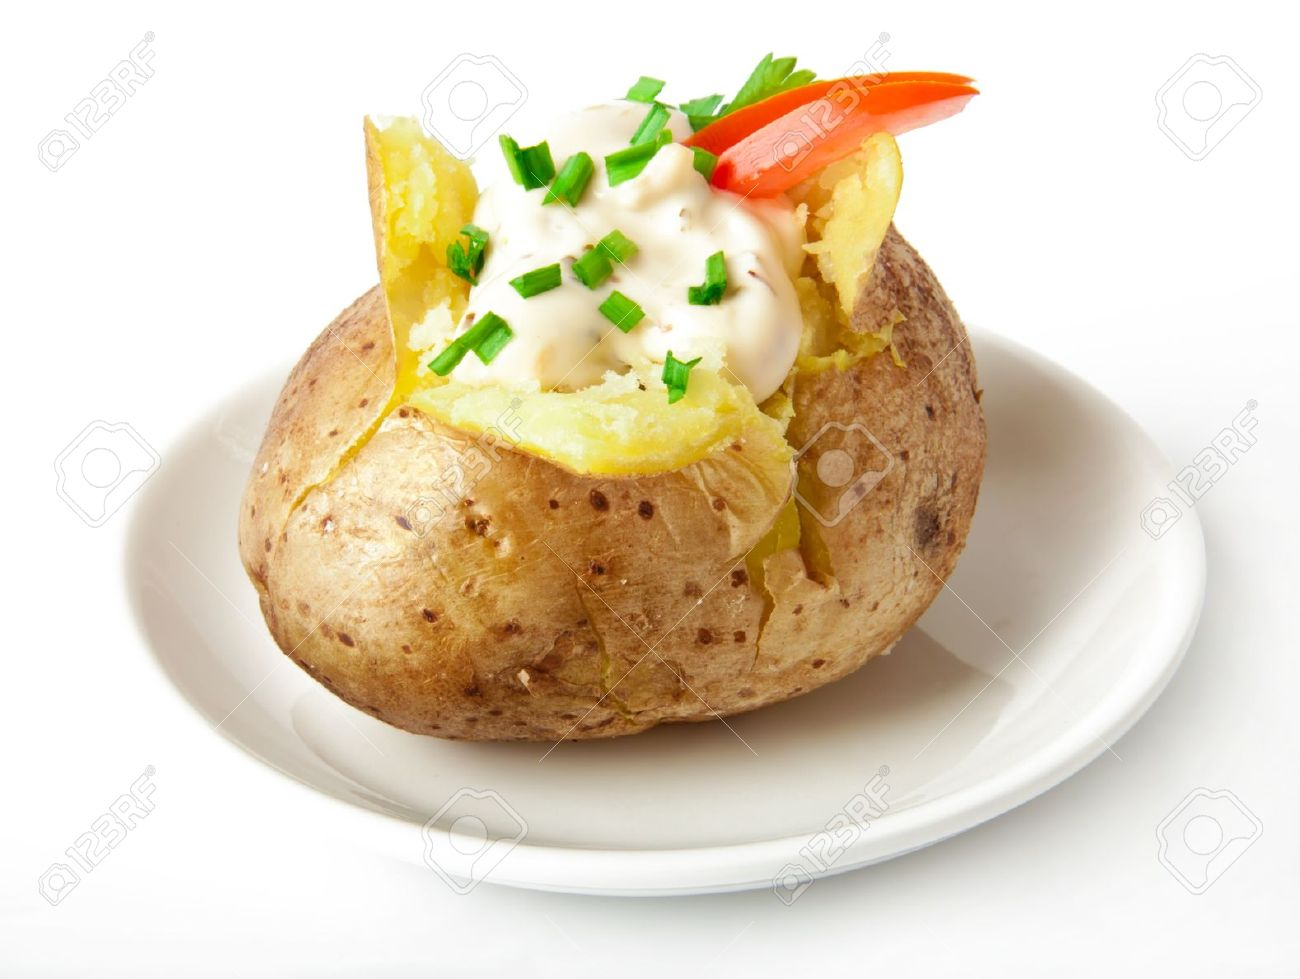 Baked potato filled with sour cream - 14117711